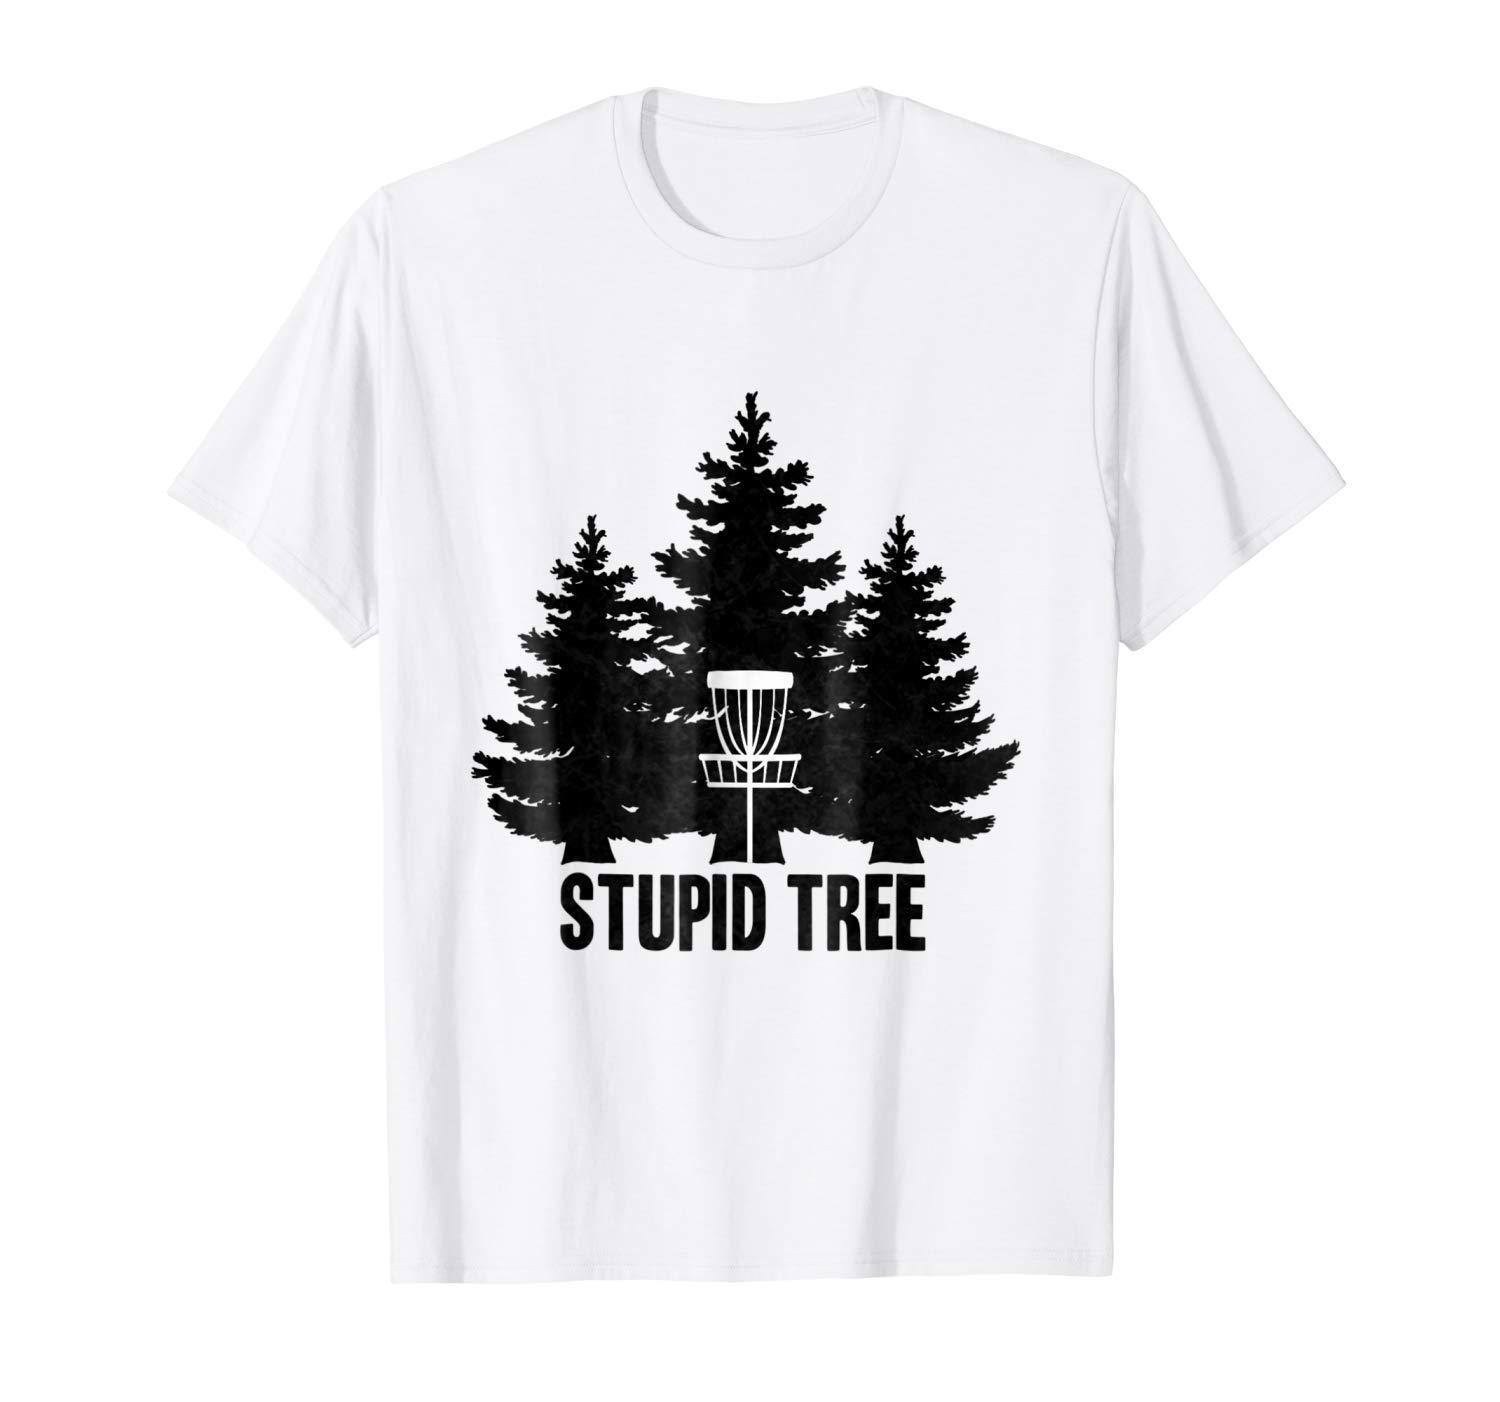 Disc Golf Stupid Tree White T Shirt S 3xl Cool Shirt Design Tshirts